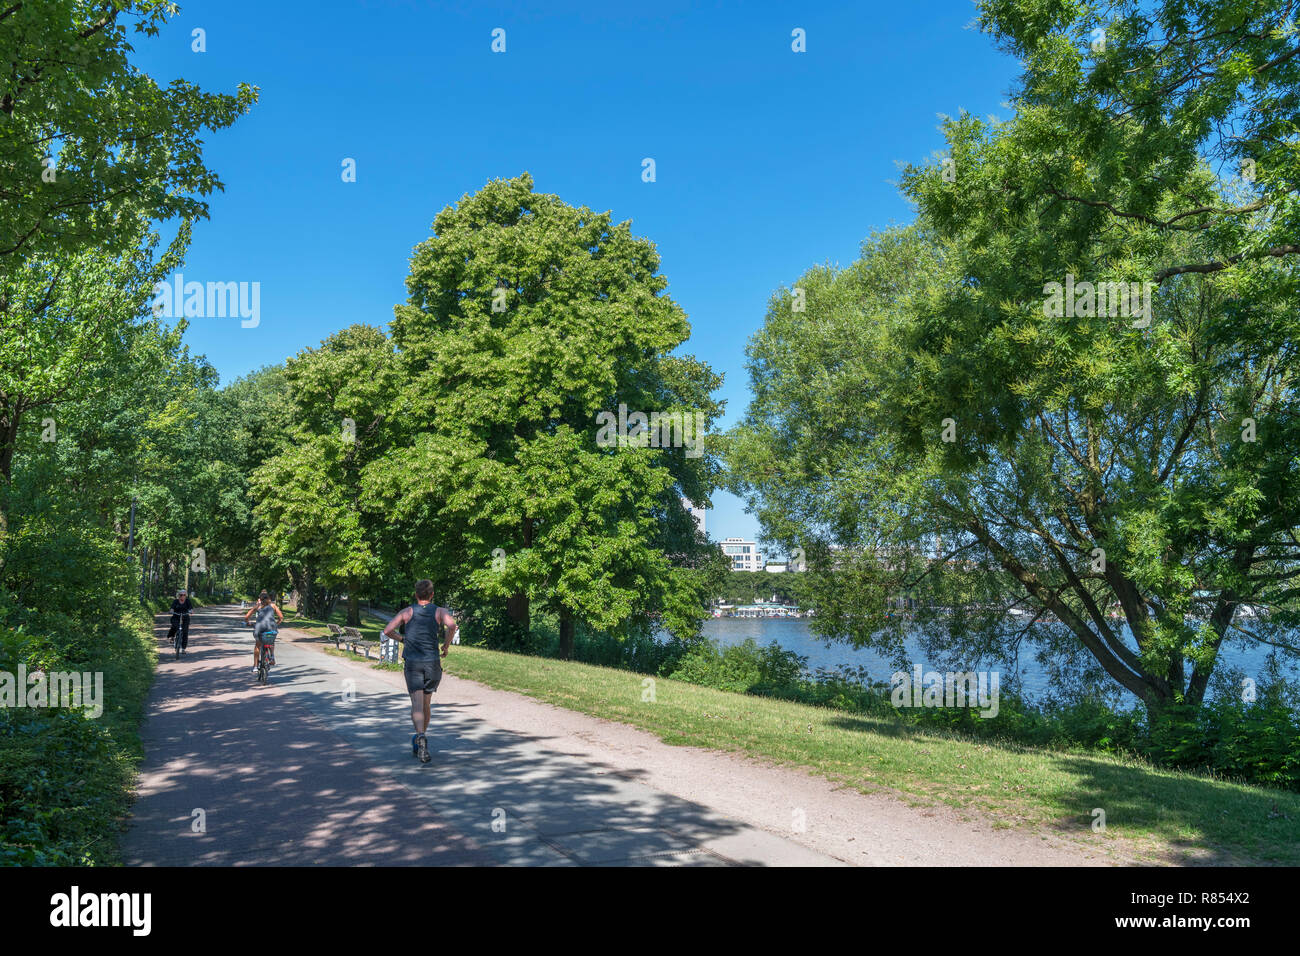 Runner and cyclists on the path alongside the Außenalster (Aussenalster), an artificial lake in Hamburg, Germany - Stock Image